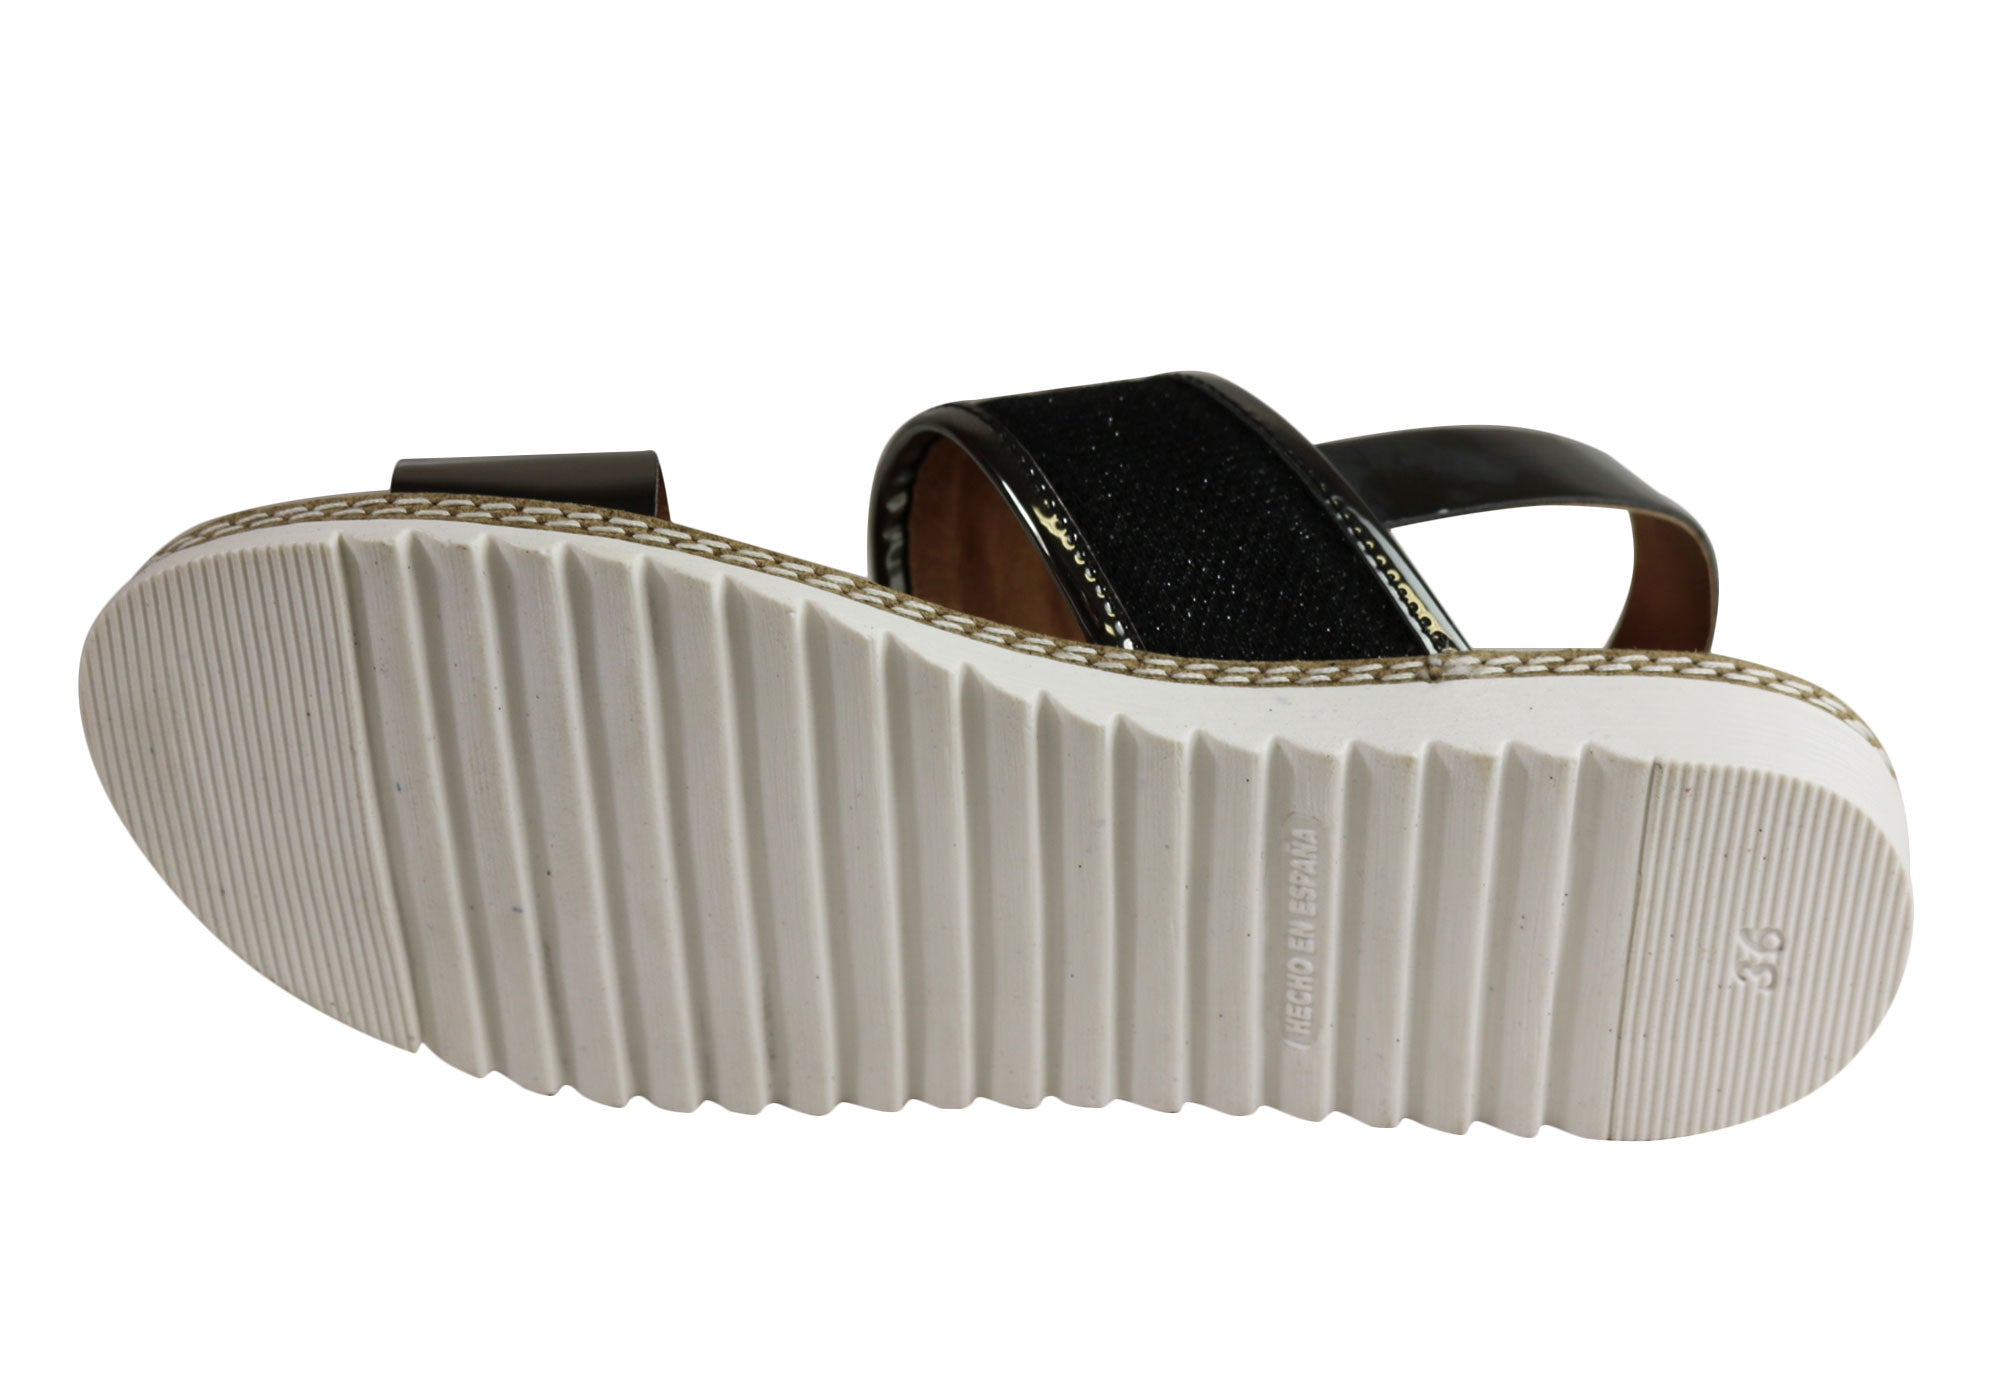 194e9f2cda2 Le Sansa By CC Resorts Pamella Womens Comfy Flat Sandals Made In Spain